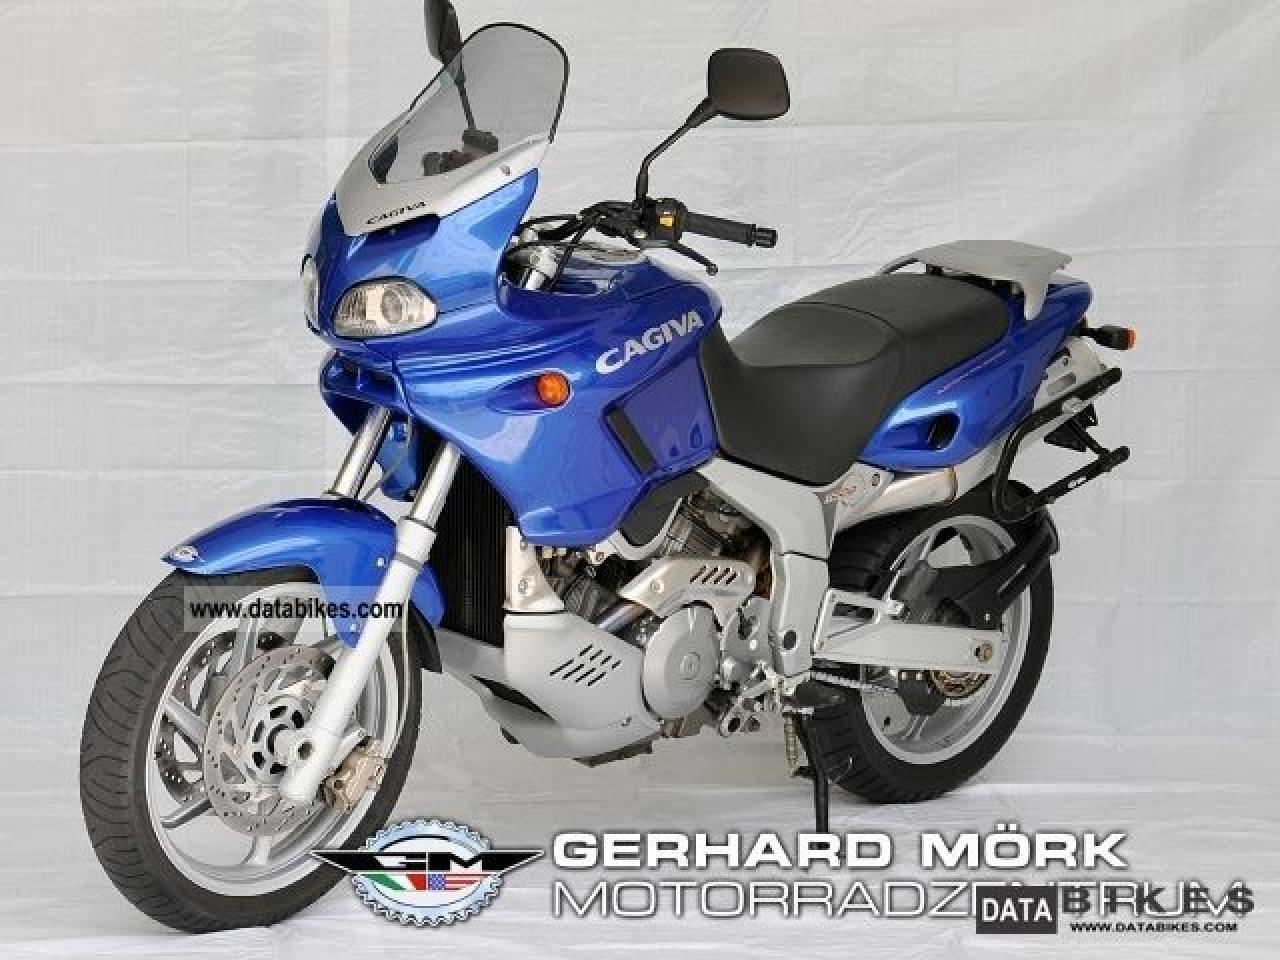 Cagiva Navigator 1000 2006 images #67717